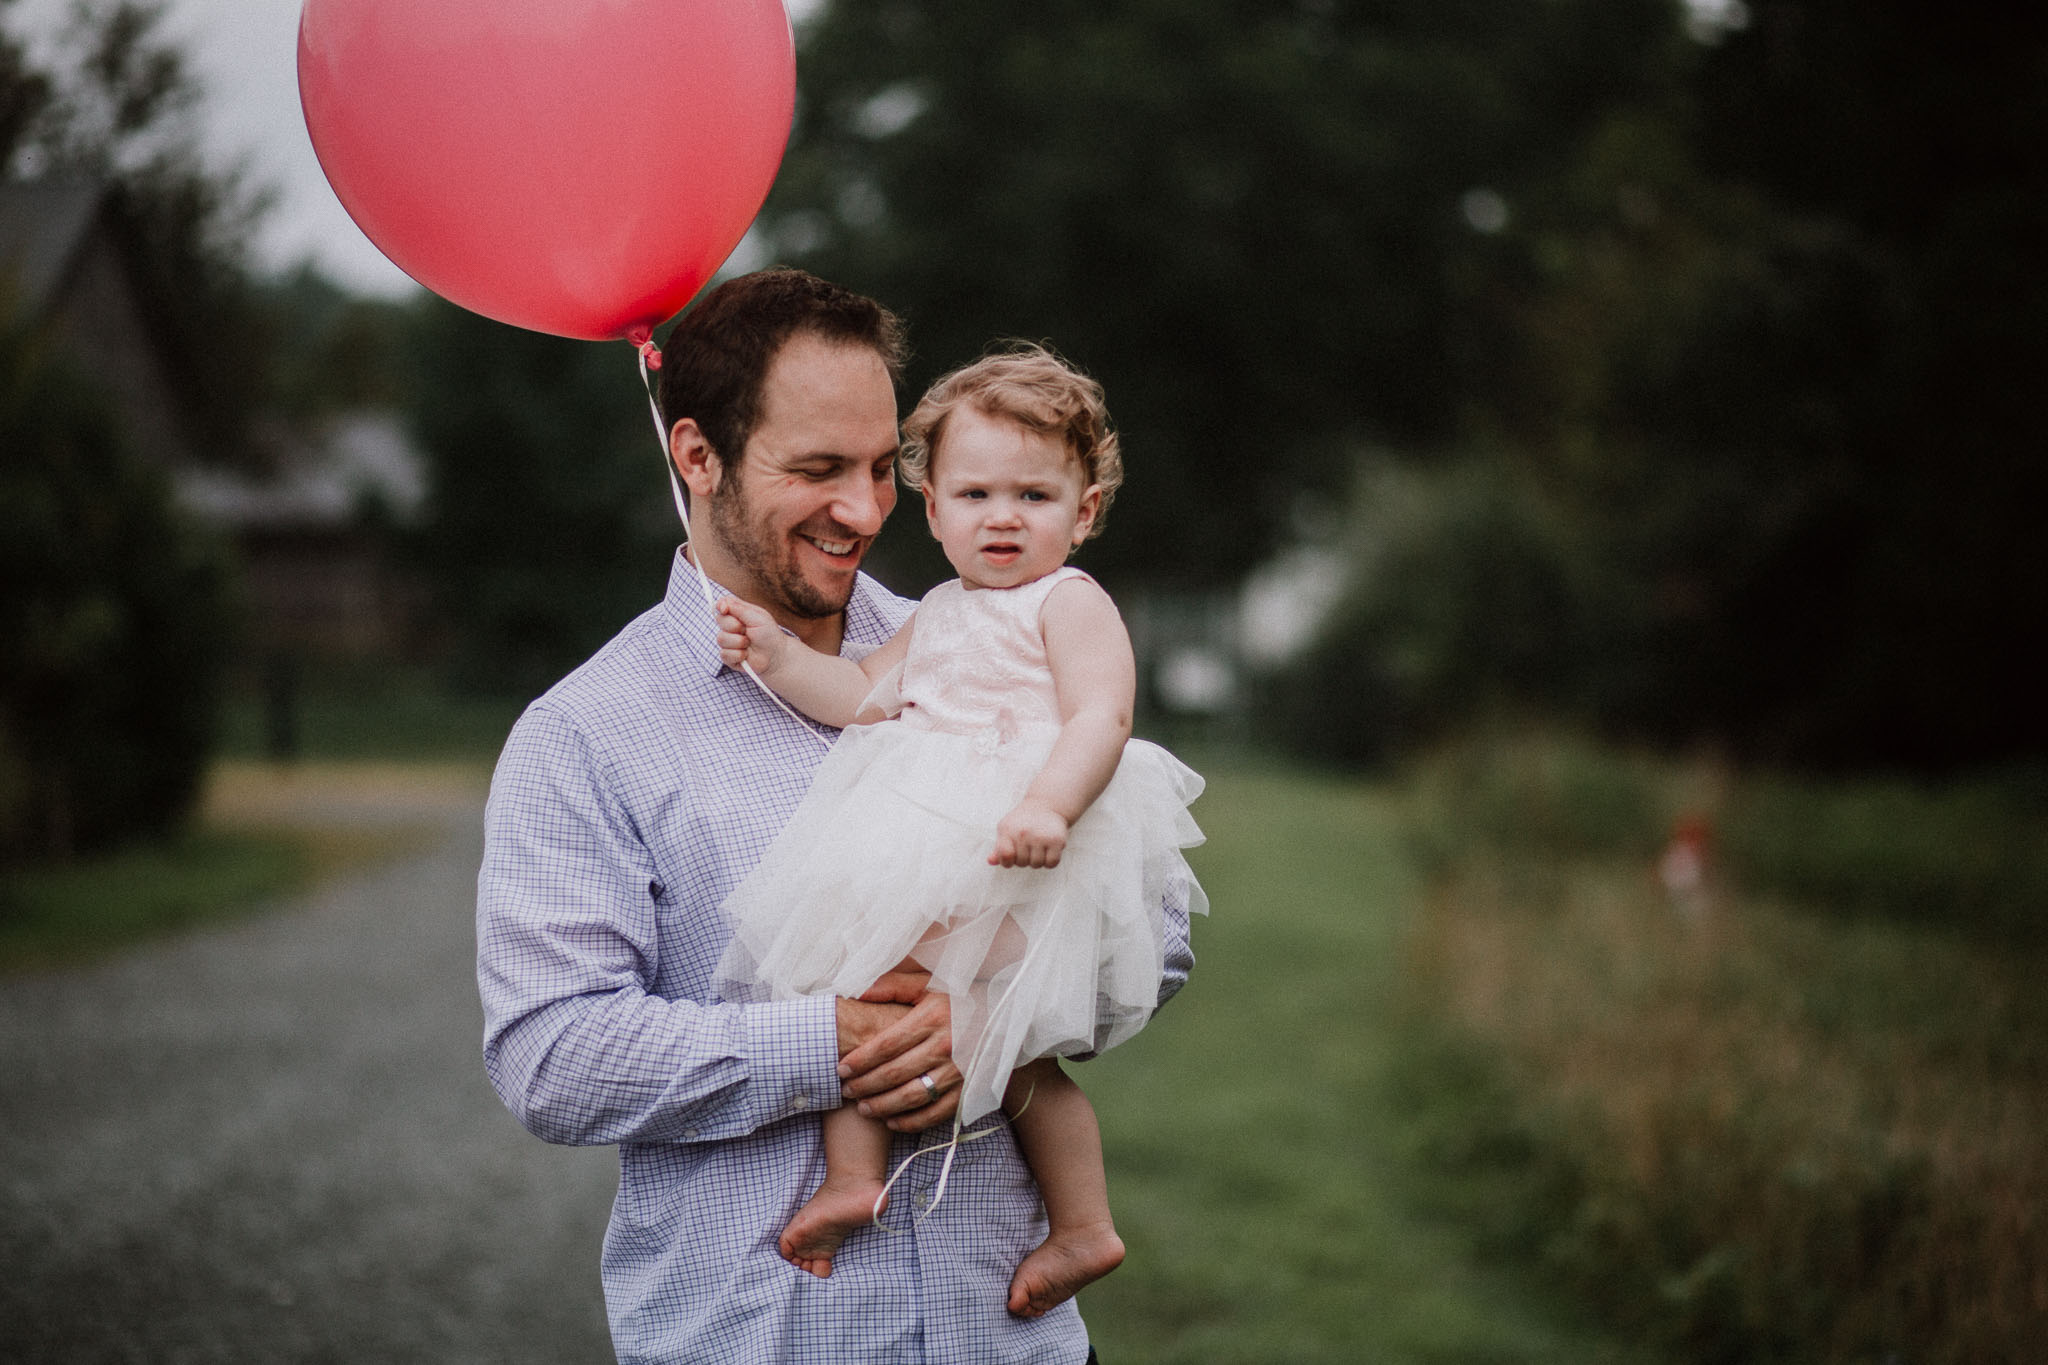 father daughter birthday balloon Sterling Virginia Claude Moore Park Lifestyle Family Marti Austin Photography